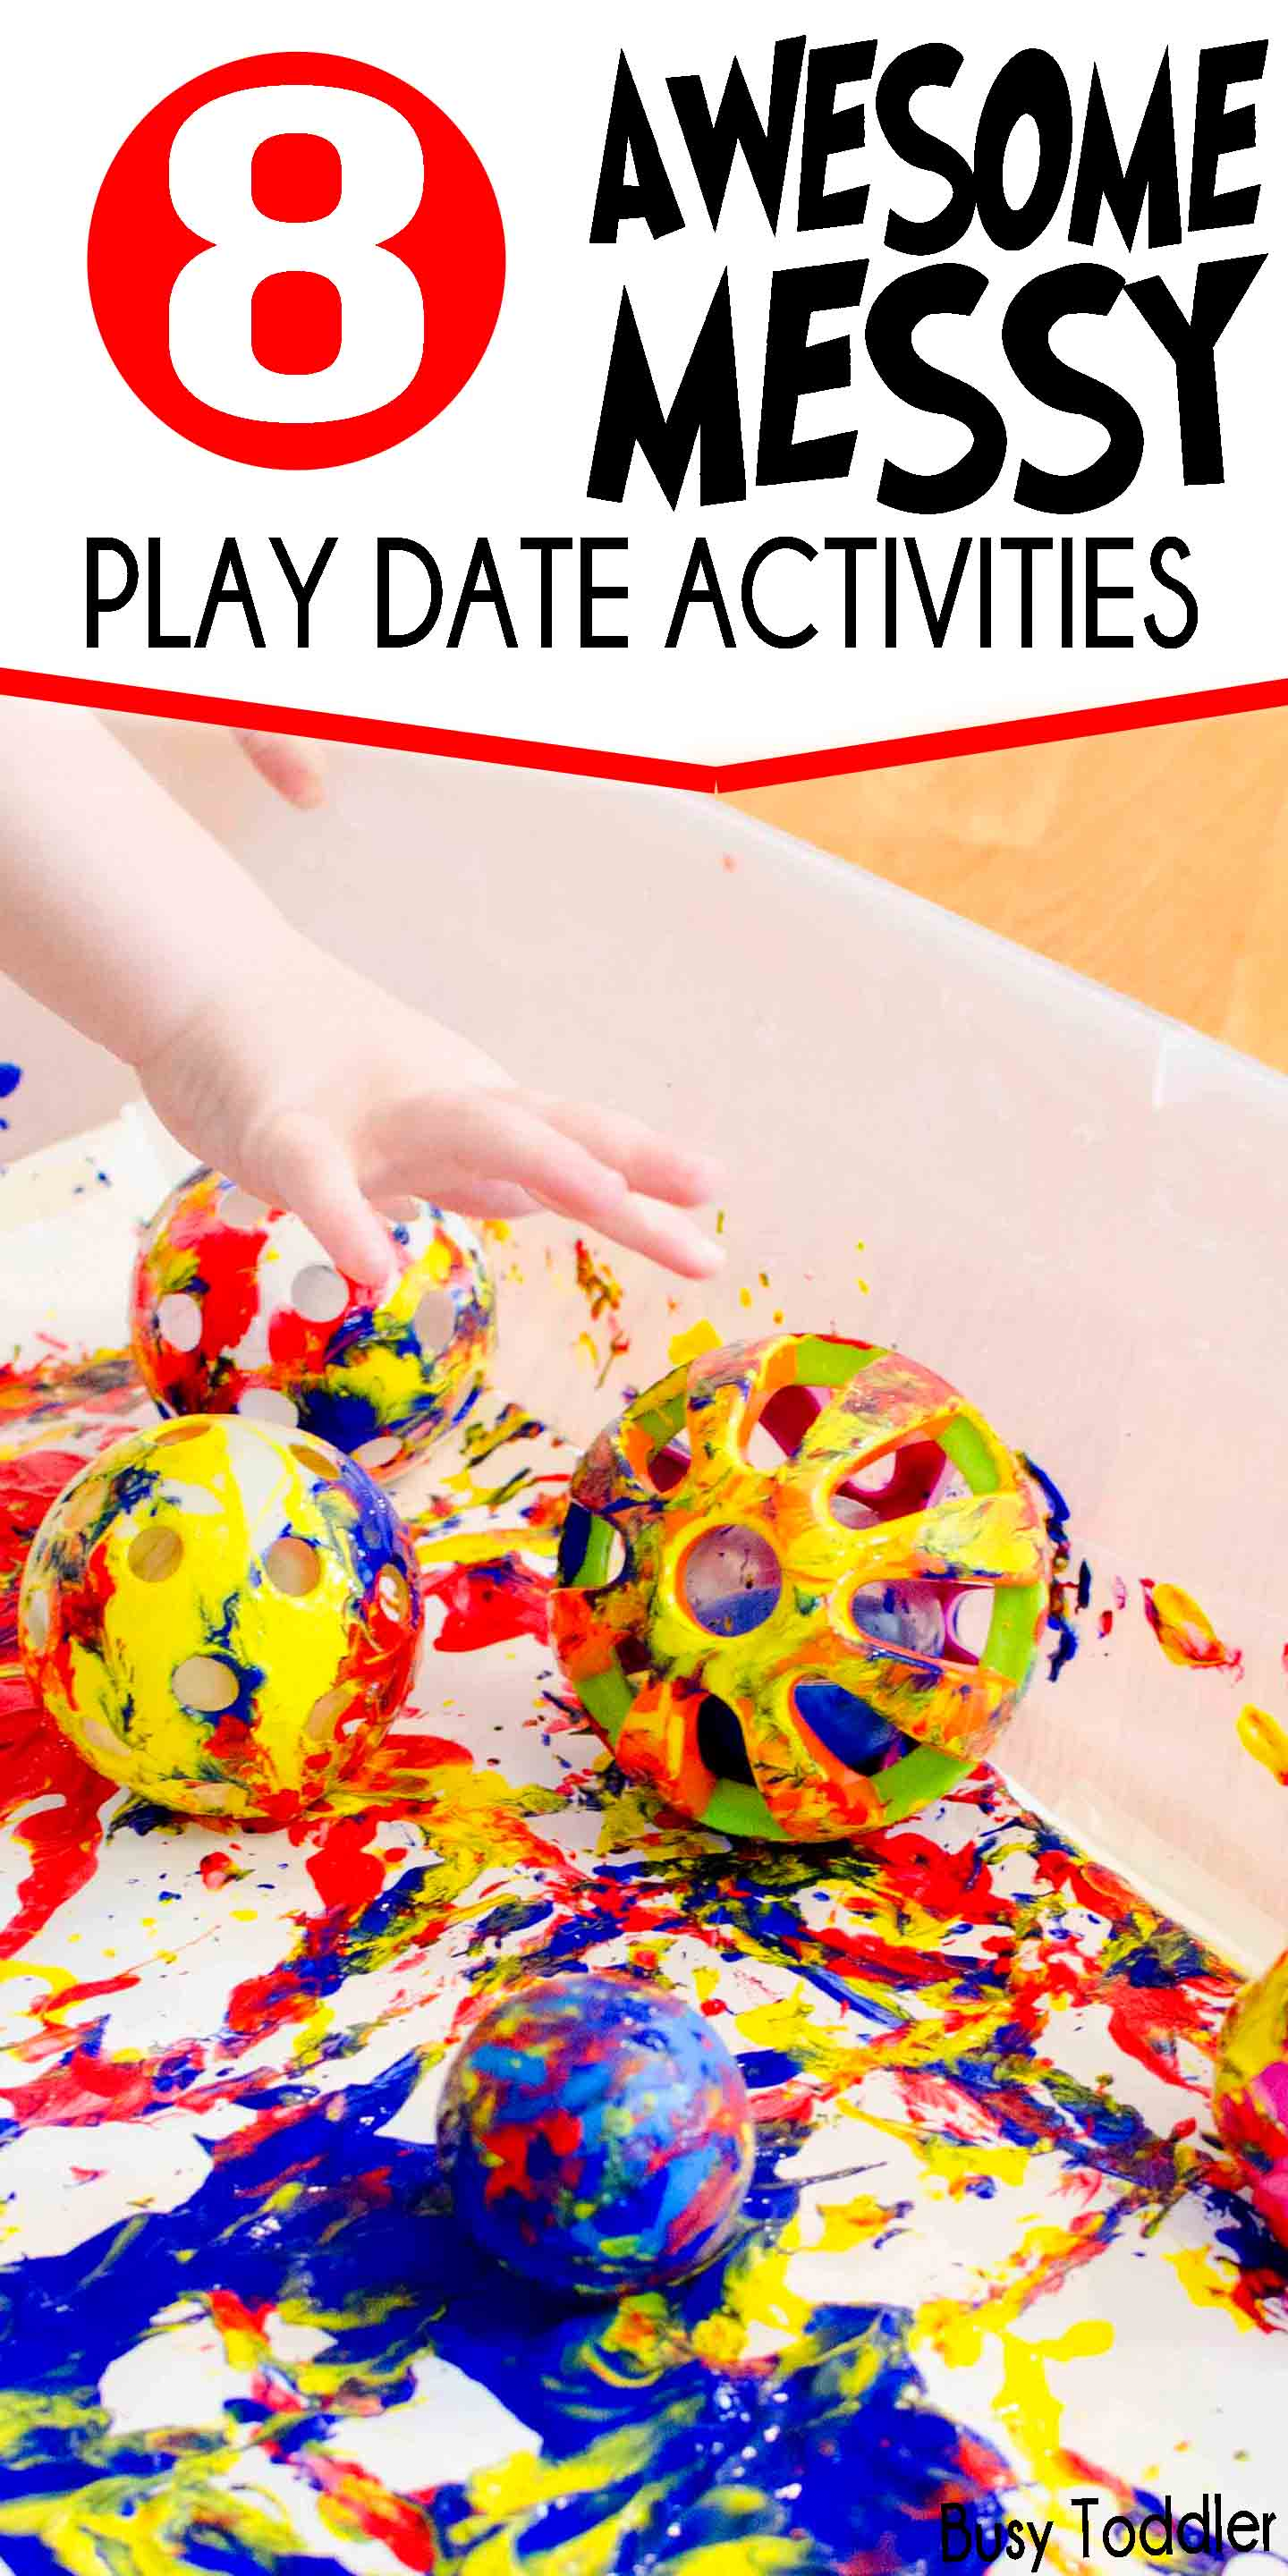 MESSY PLAY DATE: 8 awesome and messy play date activity ideas perfect for toddlers.